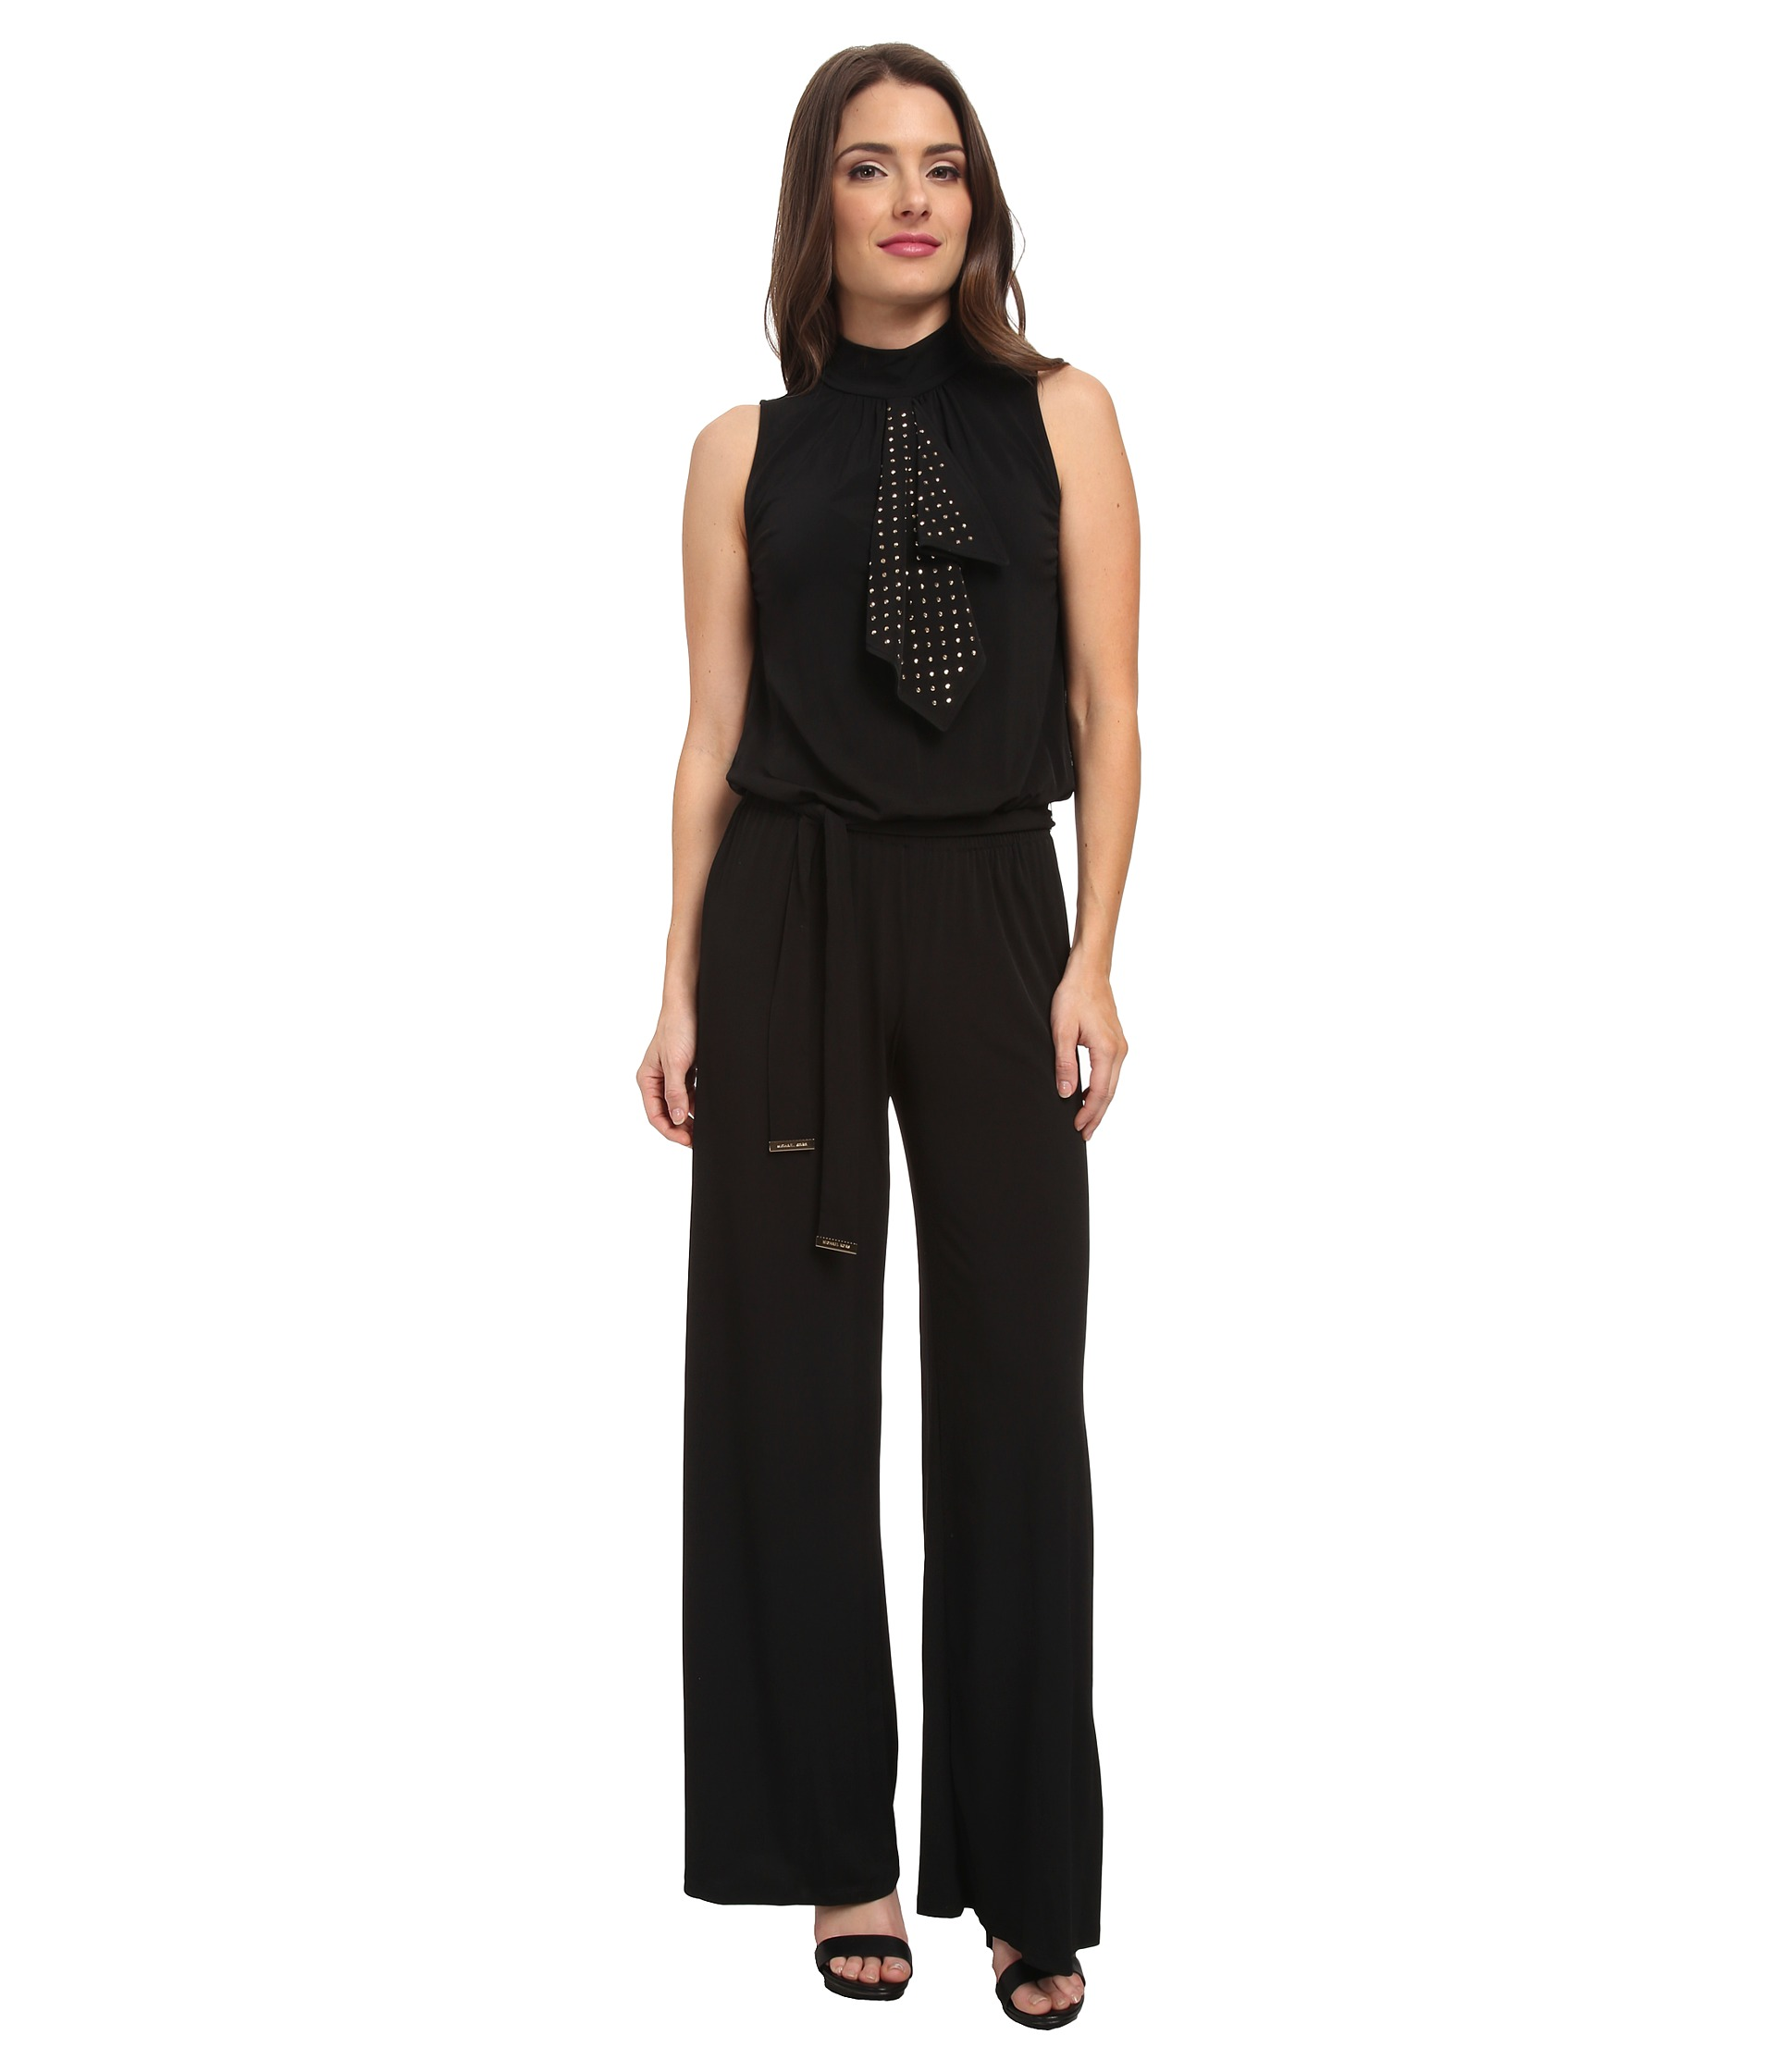 michael michael kors petite stud flounce wide leg jumpsuit shipped free at zappos. Black Bedroom Furniture Sets. Home Design Ideas